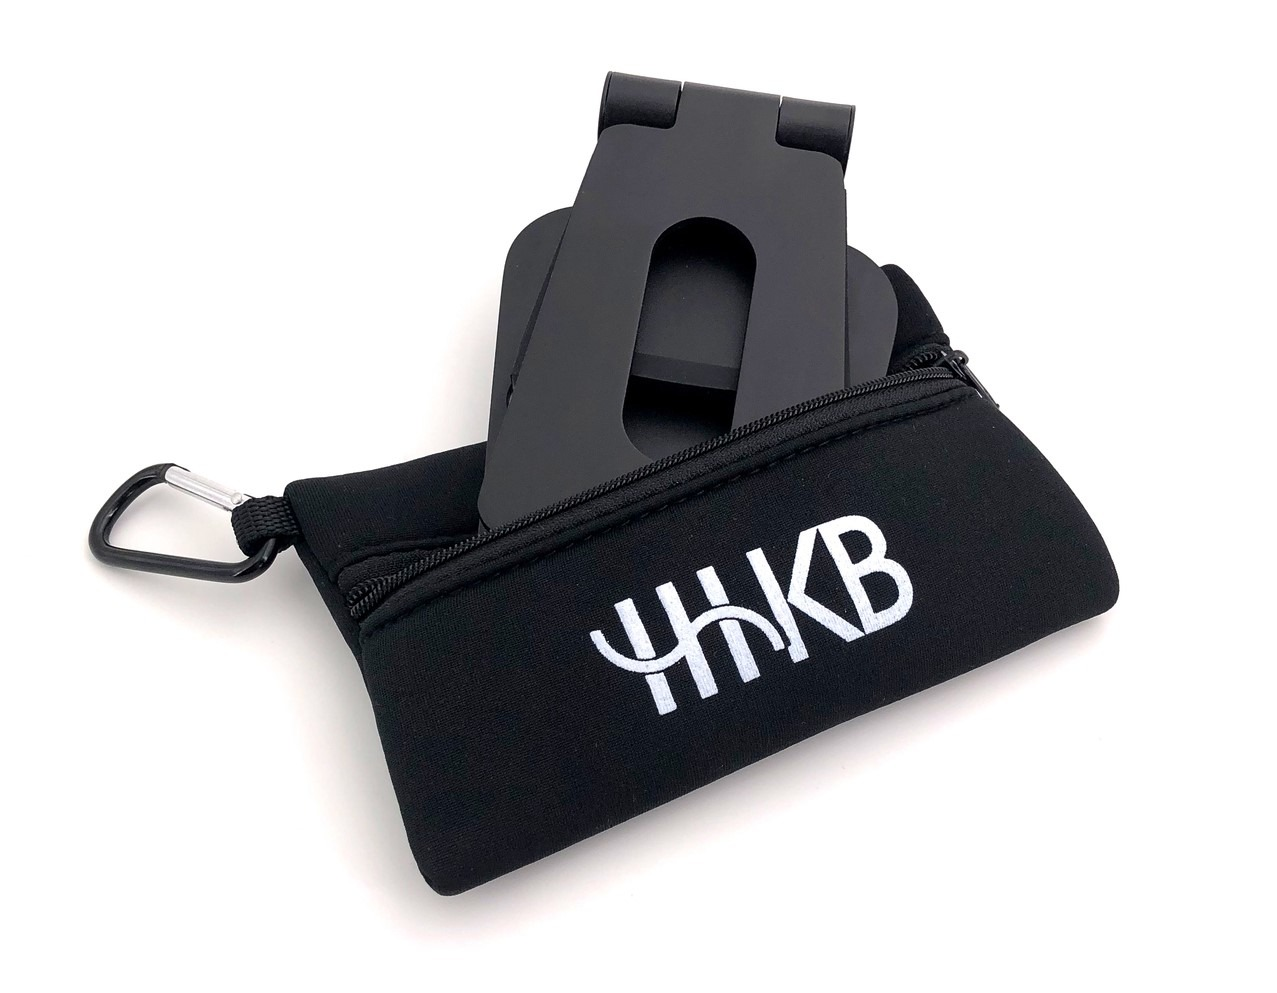 Happy Hacking Keyboard Tablet Stand And Travel Bag Hhkb